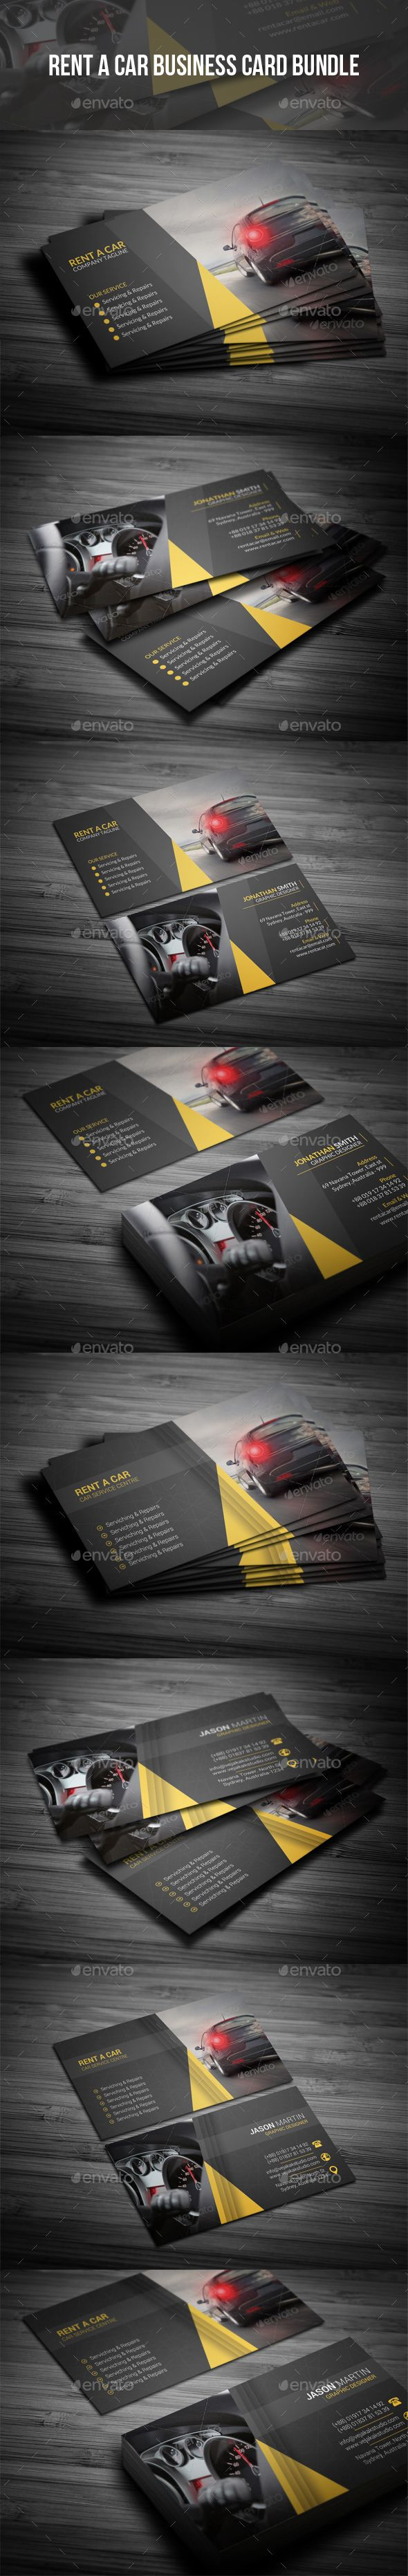 Rent A Car Business Card Template PSD Bundle